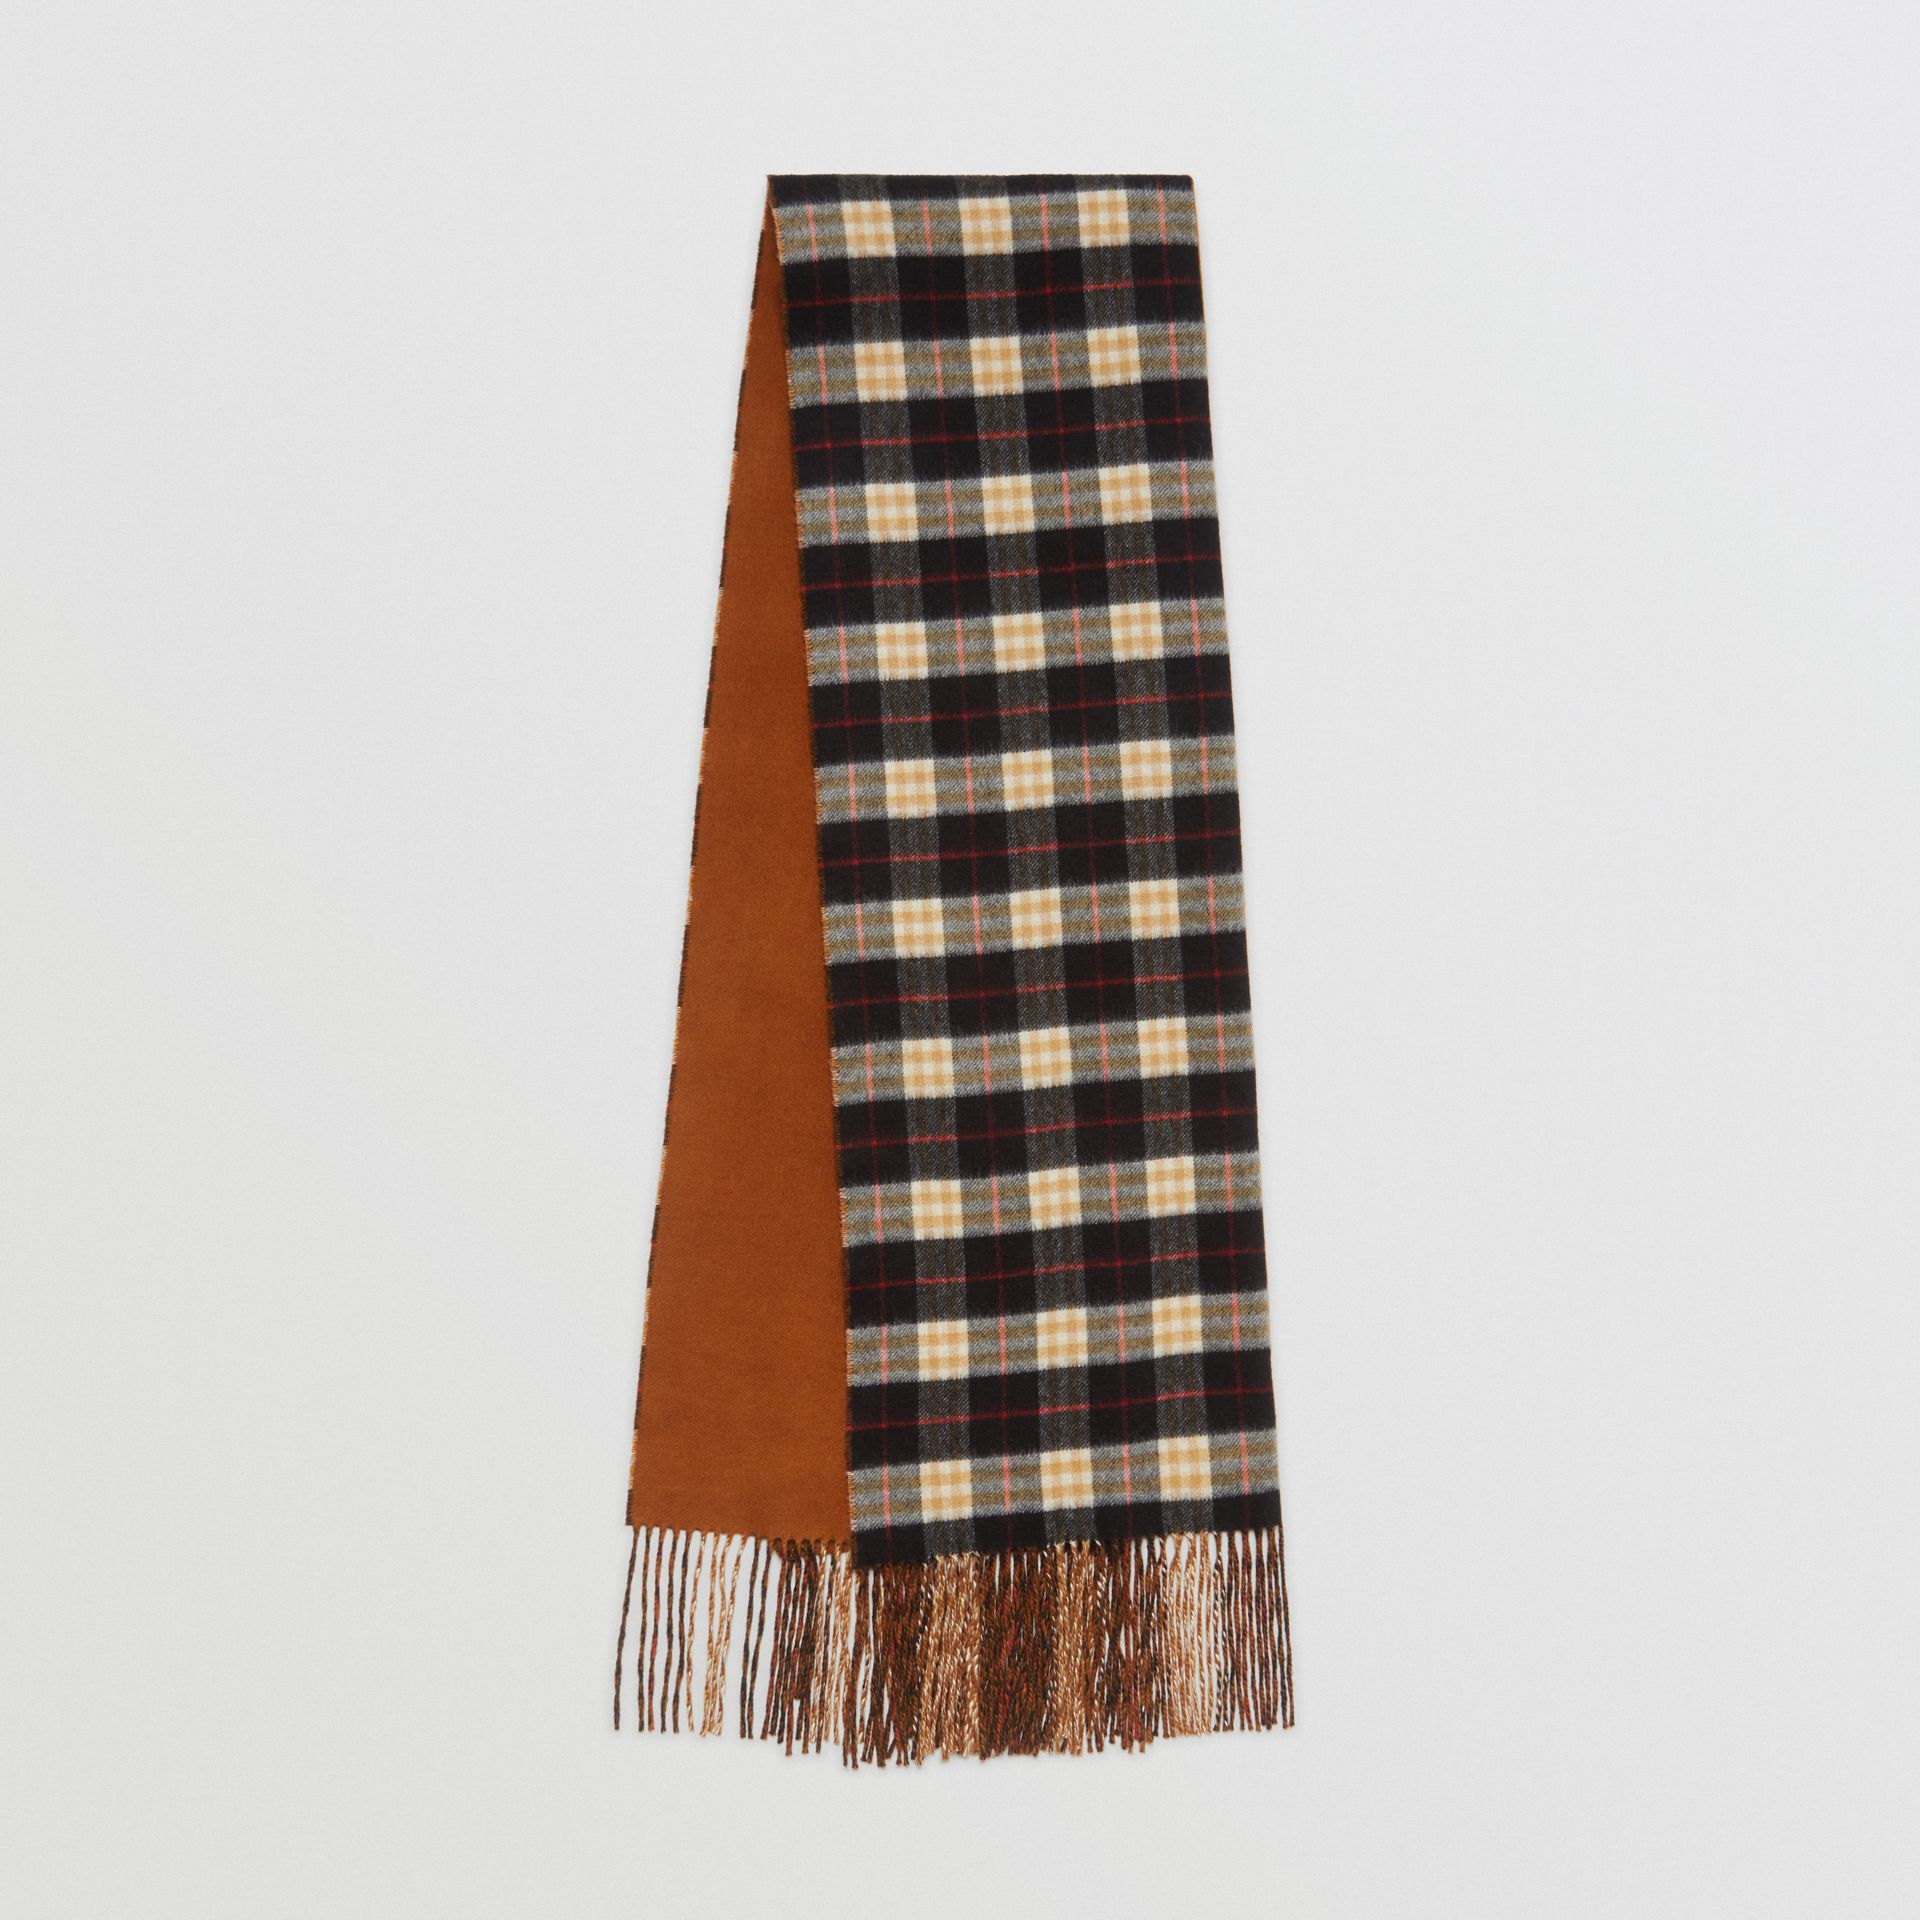 Colour Block Vintage Check Cashmere Scarf in Toffee | Burberry - gallery image 0